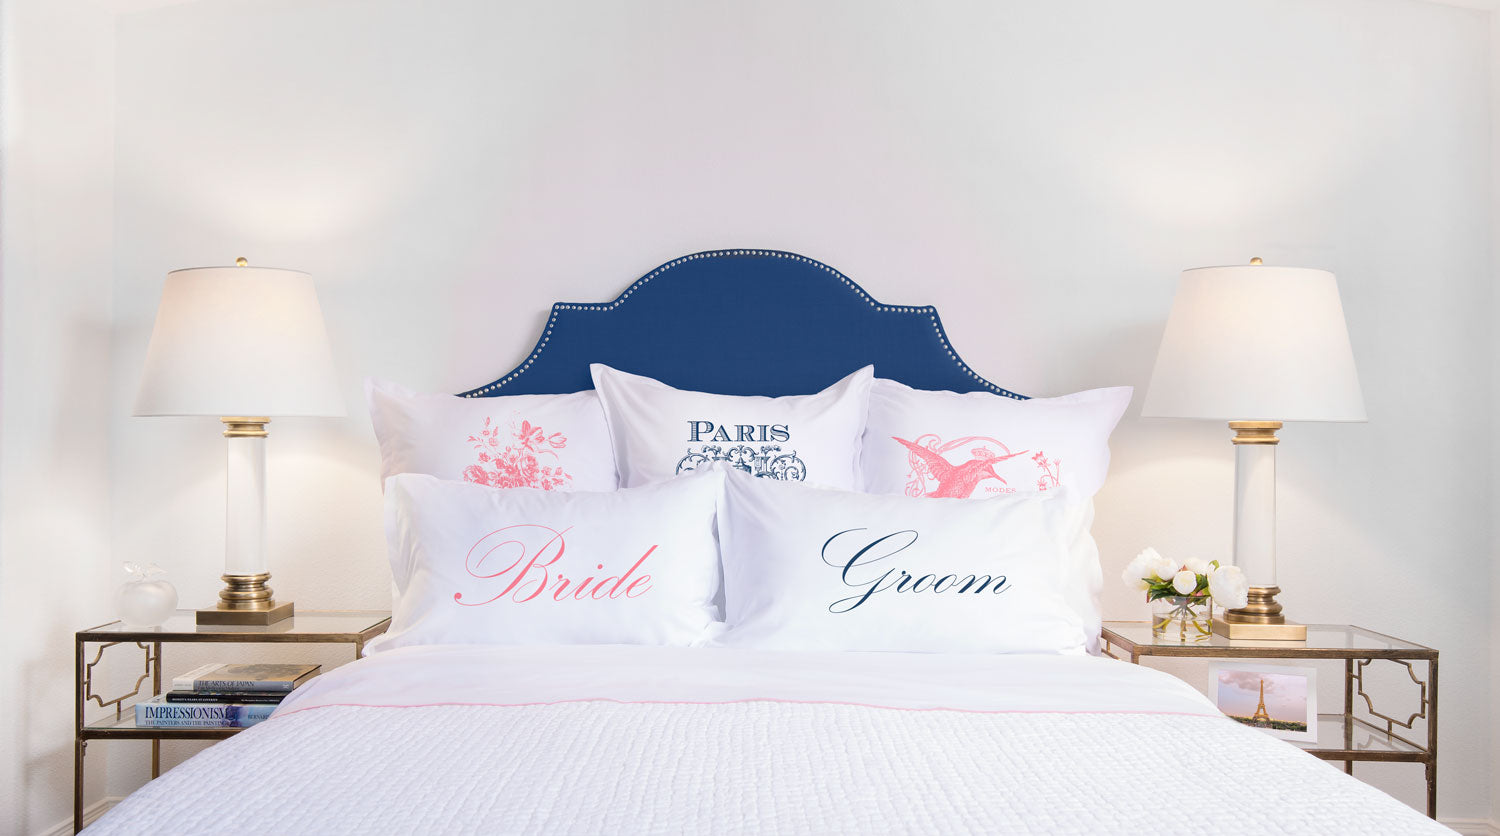 Bride, Groom - His & Hers Pillowcase Collection